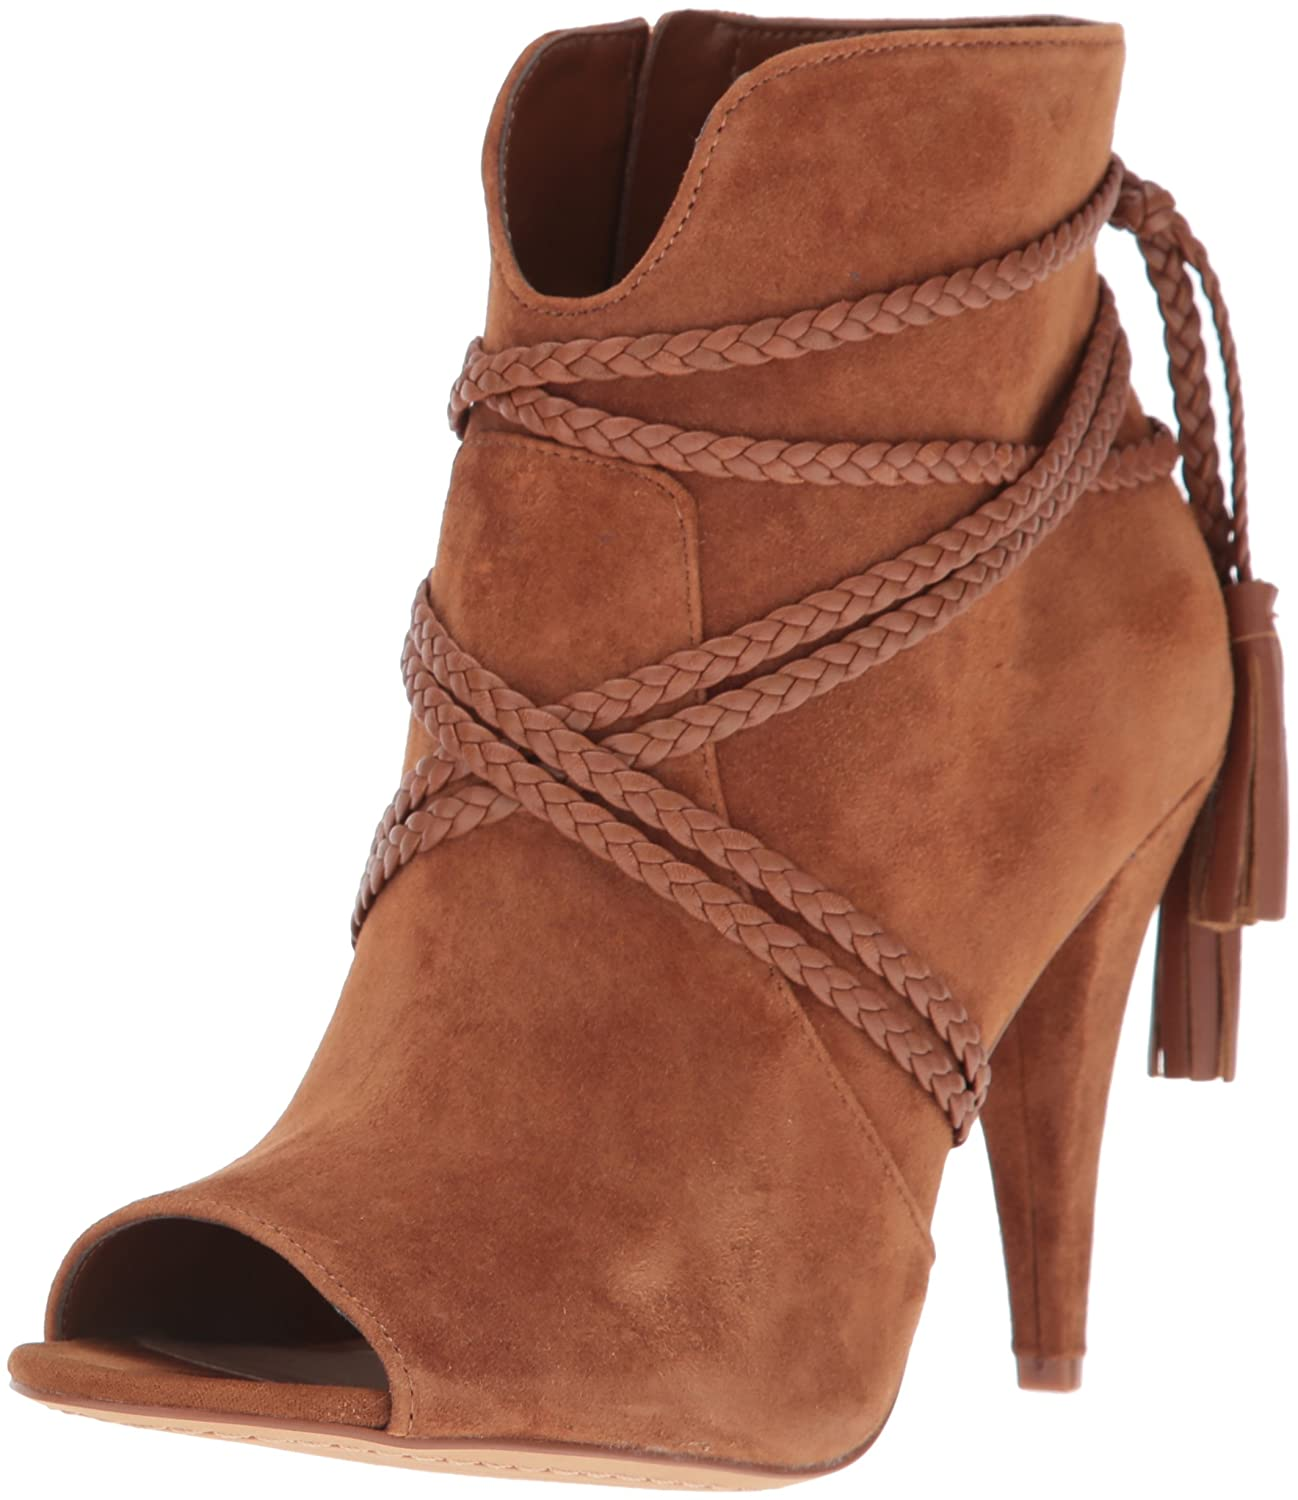 Vince Camuto Women's Astan Ankle Bootie B01FRWLP6I 6 B(M) US|Rustic